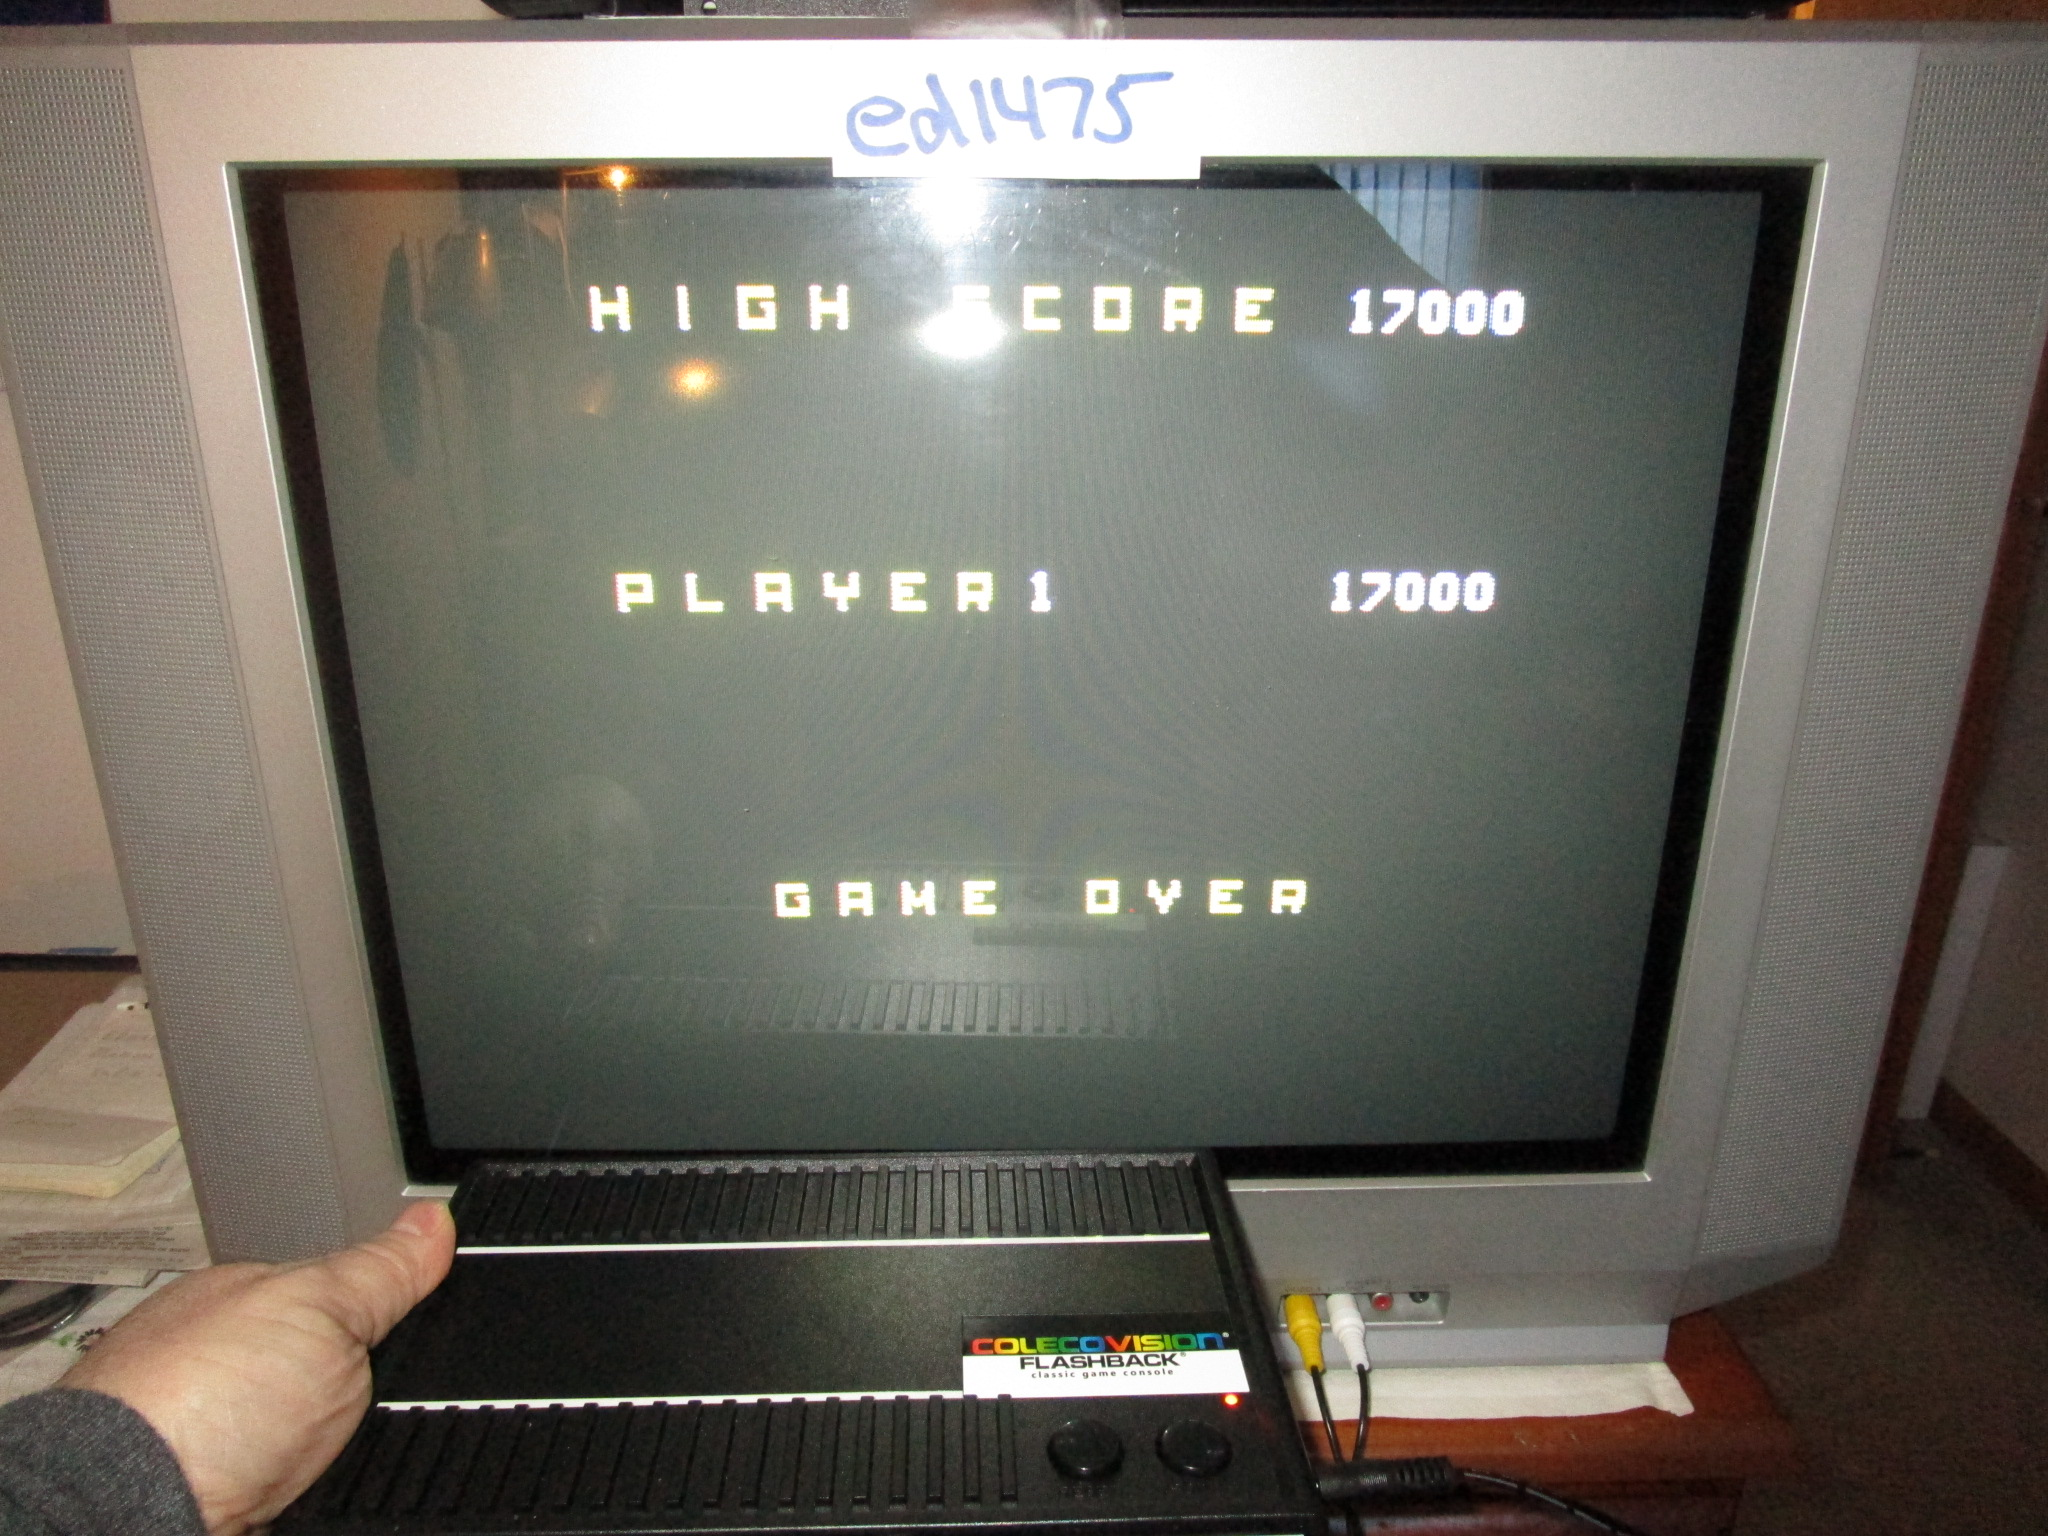 ed1475: Rolloverture: Skill 1 (Colecovision Flashback) 17,000 points on 2015-02-23 00:37:11